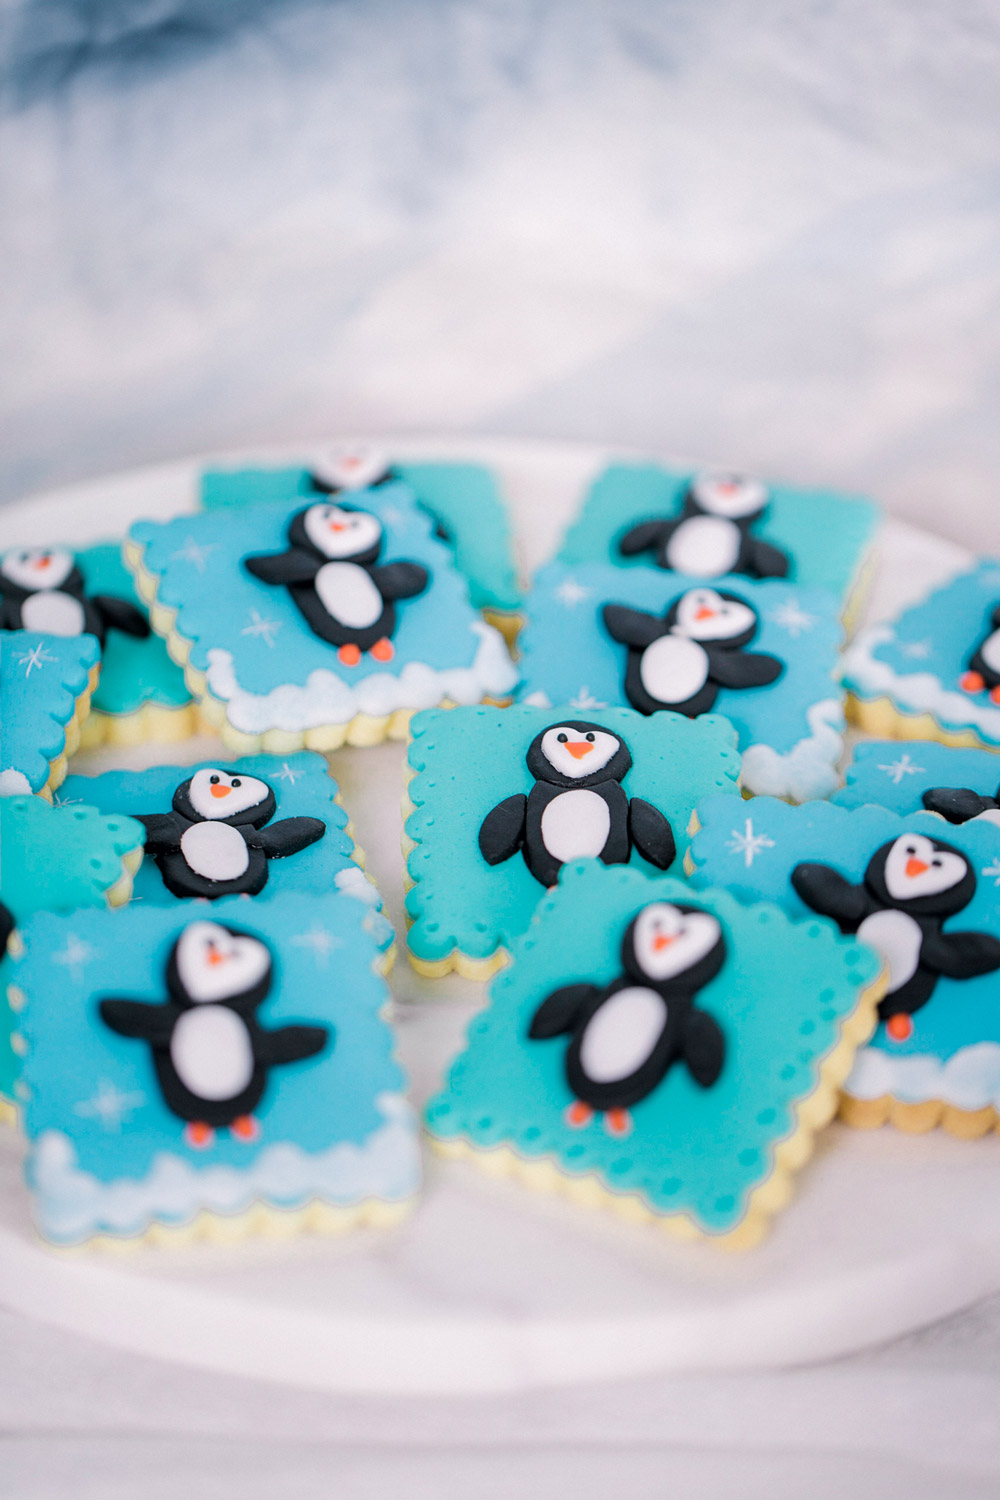 penguin-decorated-sugar-cookies.jpg